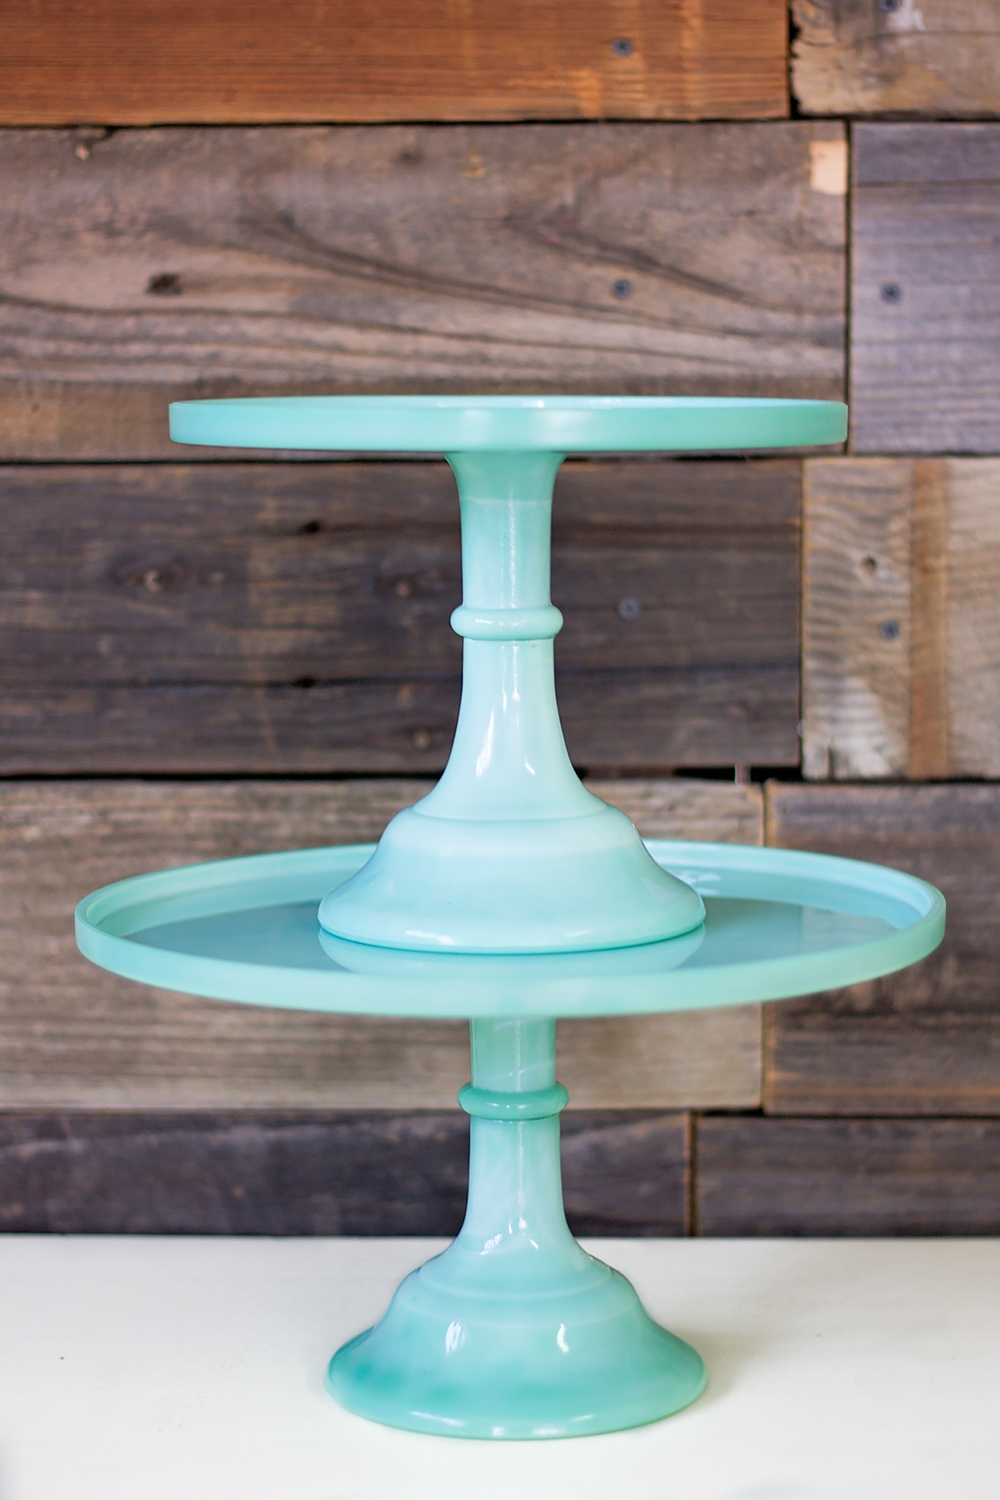 Faux Jade Stands $15 & $19